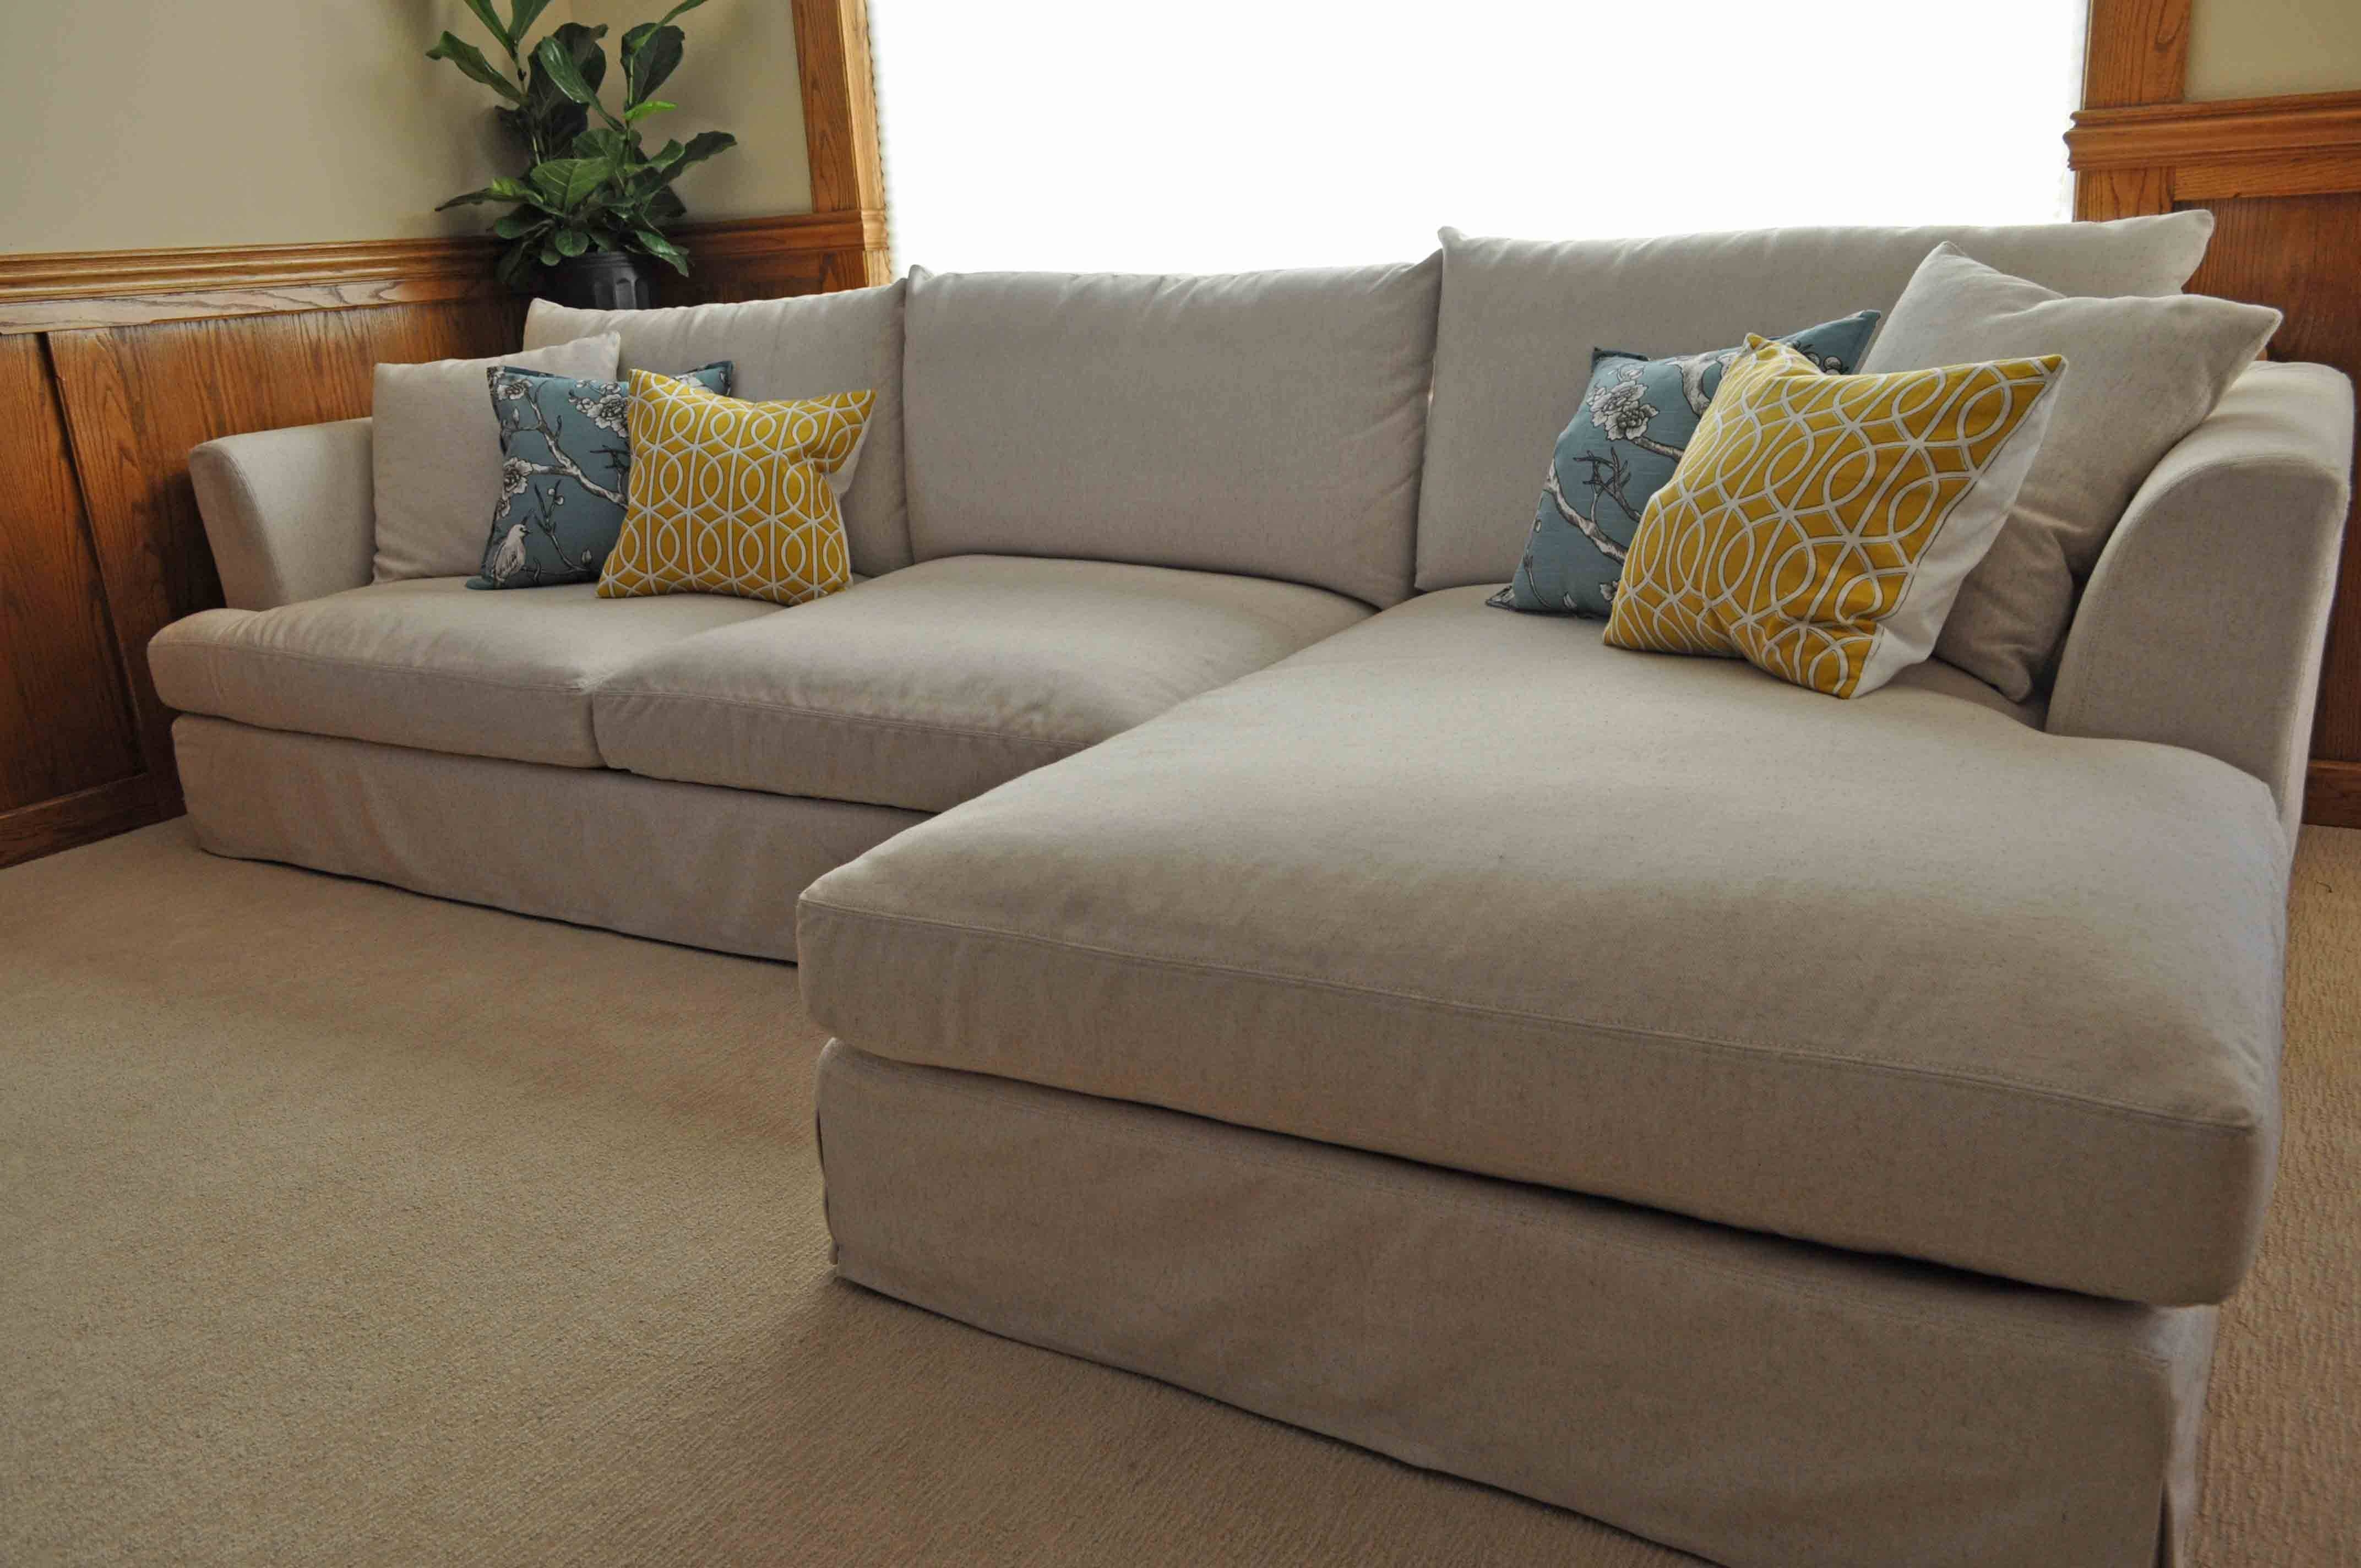 Interior: Luxury Oversized Sectional Sofa For Awesome Living Room for Huge Sofas (Image 19 of 30)